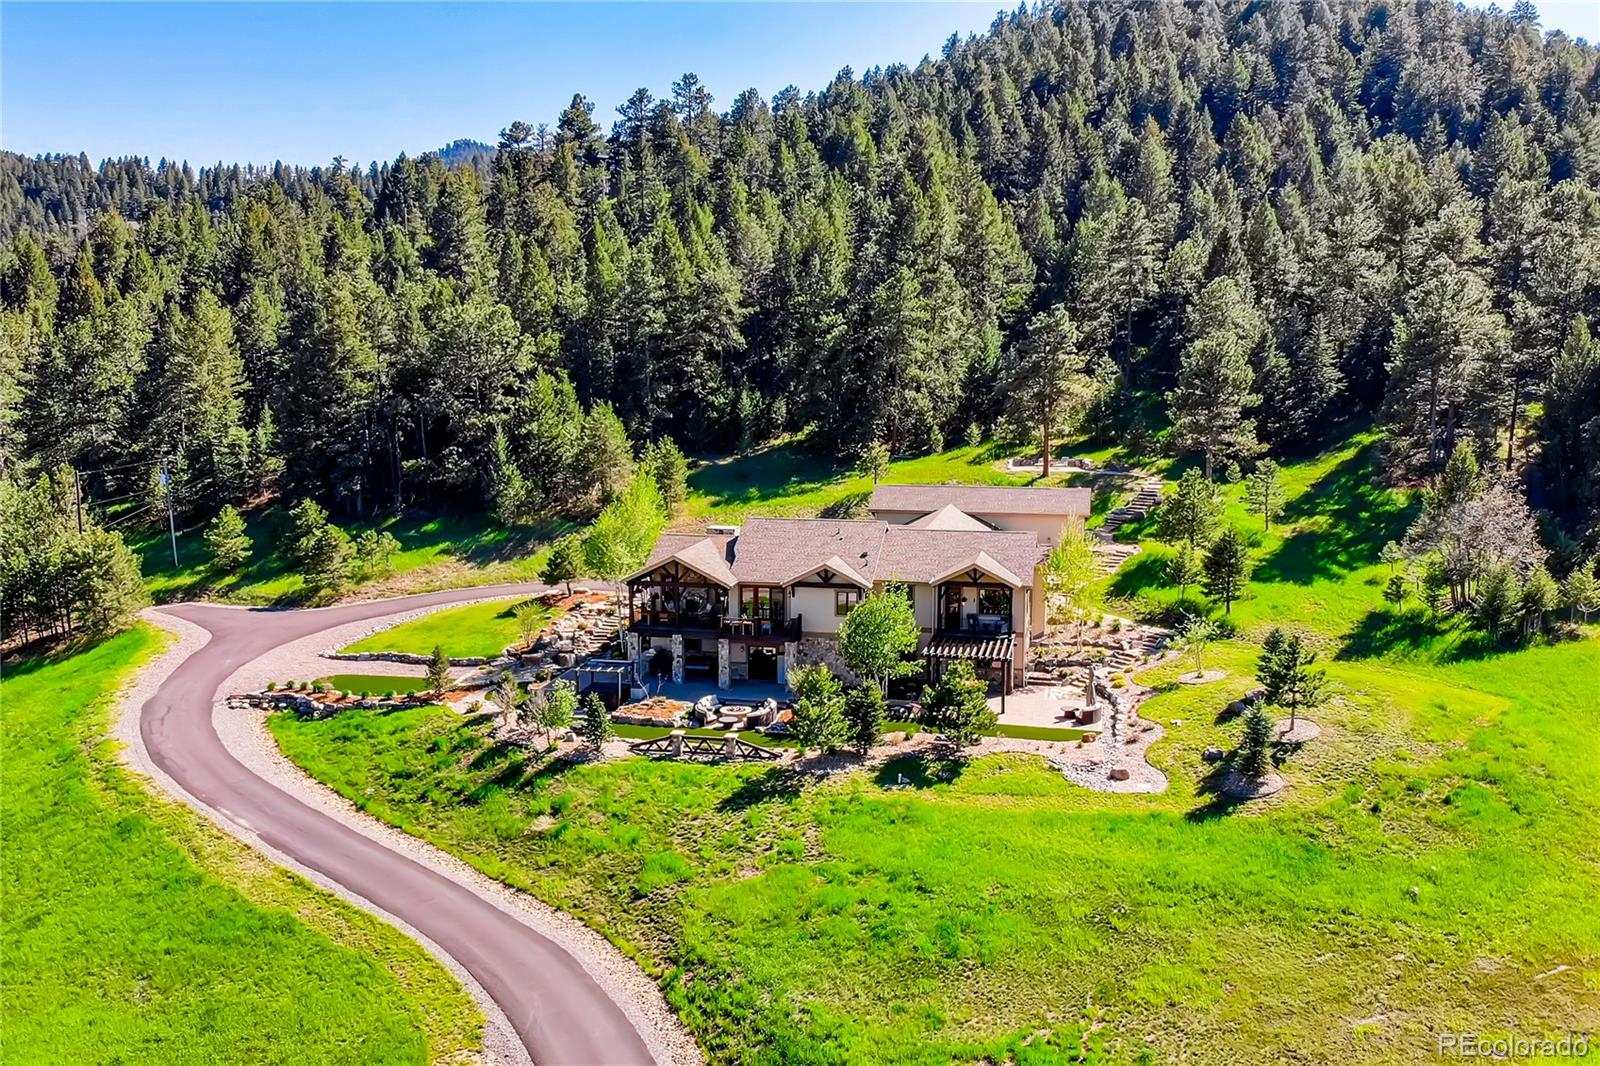 CHECK OUT DRONE VIDEO BY CLICKING ON THE VIDEO REEL or HOMESNAP-virtual tour under photos!  Stunning hillside Luxury home on 5 acres where mountain meets meadow in the highly sought after Lane Ranch neighborhood of Indian Hills offering 360 degree mountain views to enjoy the stunning Colorado sunsets. Modern Mountain living w/ paved roads, natural gas, XFINITY WIFI (only home in Lane Ranch w/ xfinity) and Mountain views you don't want to miss! As you enter, soaring vaulted ceilings highlight the open, Colorado architectural design with big living spaces. Clean lines & elegant finishes define this luxury home. Exquisite private master suite and 3 en suite bedrooms, open kitchen with expansive granite countertops, dining and hearth room concept that overlook the deck, fire pit, built-in kitchenette and hot tub which hear the soothing sounds of the top of the line water feature. Oversized 3-car heated garage and bonus RV garage w/ full hookups, 50A power, water & sewer, finished basement w/ built in speaker system, fenced dog run and additional storage areas provide more than enough room for cars, boats, toys and all the gear your mountain lifestyle will desire. Top-notch landscaping comprising over 120 tons of rock, this outside oasis is full of features that are perfect for a quiet evening outdoors or entertaining family and friends. Stone stairways take you around the entire home and to an upper seating area to enjoy a nice mid afternoon siesta in the fresh mountain air.  This home features two luxurious outdoor patios running the length of the home with an under deck drainage system and a private master suite patio. The privacy of this home and abundance of nature and wildlife is second to none.  Enjoy the solitude of foothill living just 35 minutes from downtown Denver yet w/in minutes of vast trail systems such as Red Rocks Amphitheater, Parmalee Gulch Park, and Mt. Falcon. A must see for those wanting contemporary mountain living but short drive to the city!